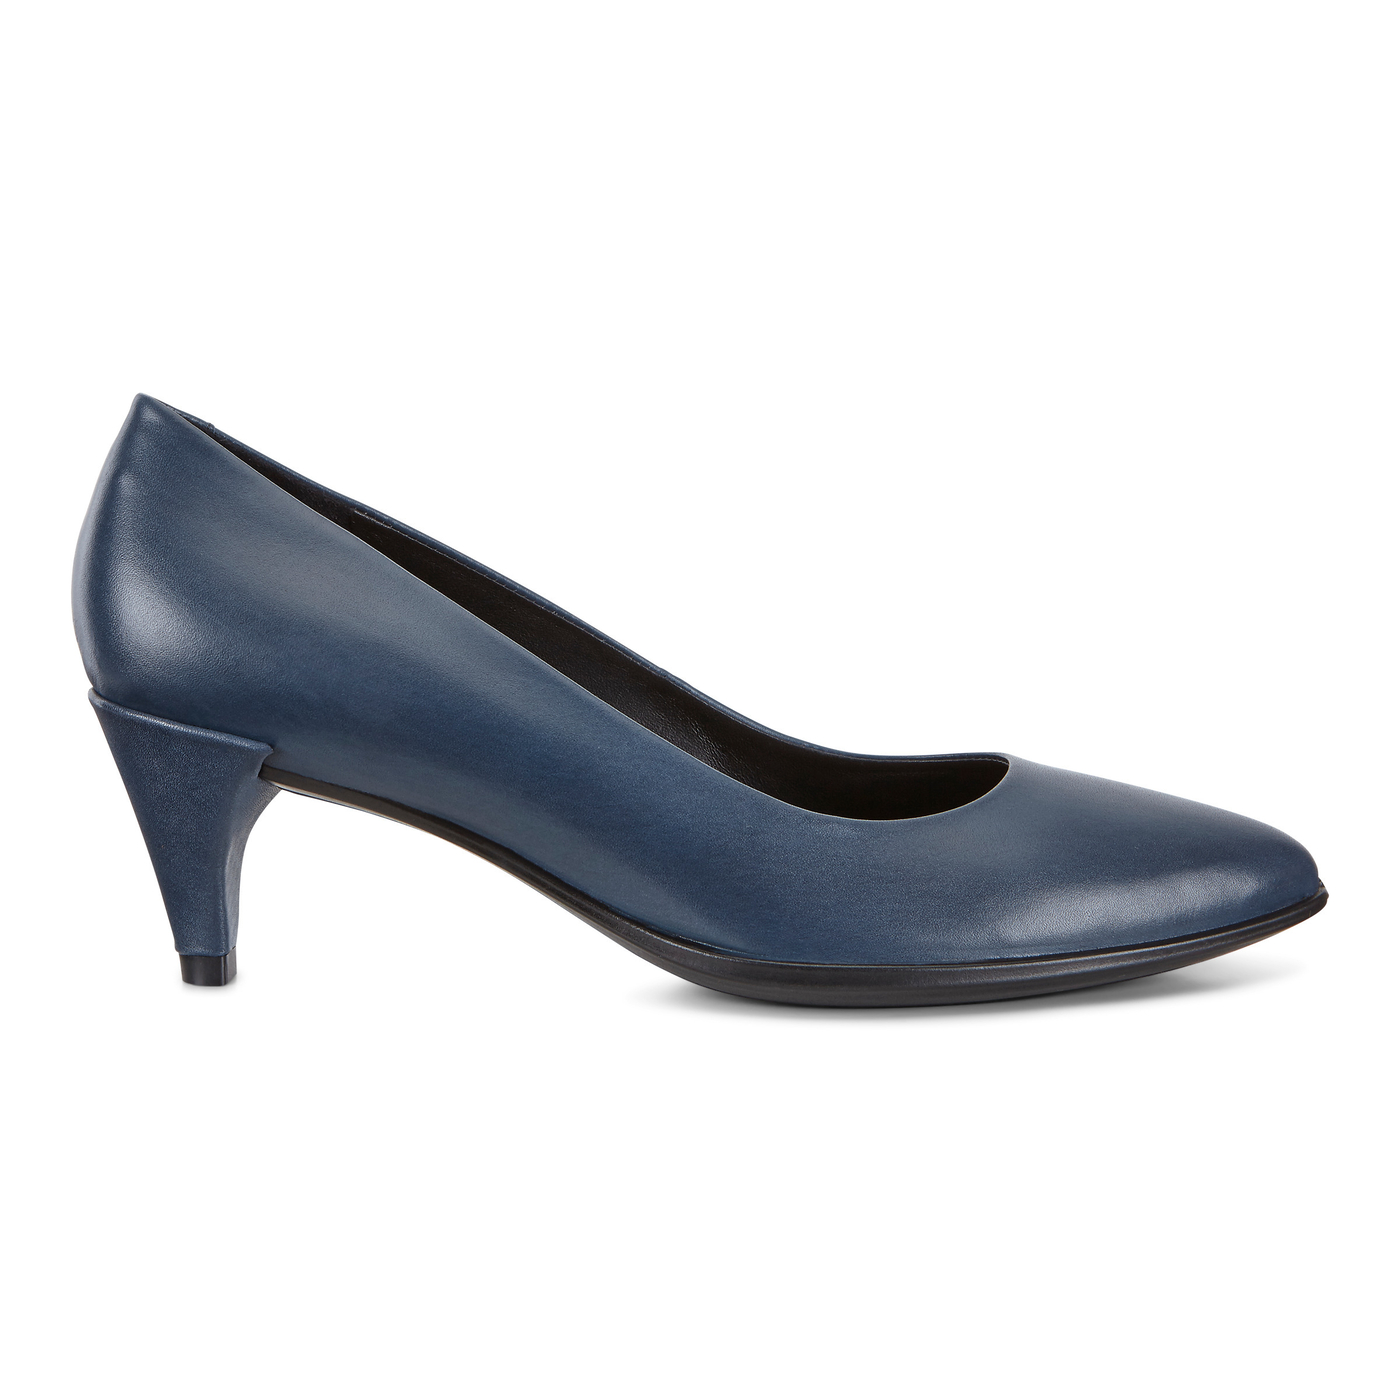 ECCO SHAPE POINTY SLEEK Pump 45mm